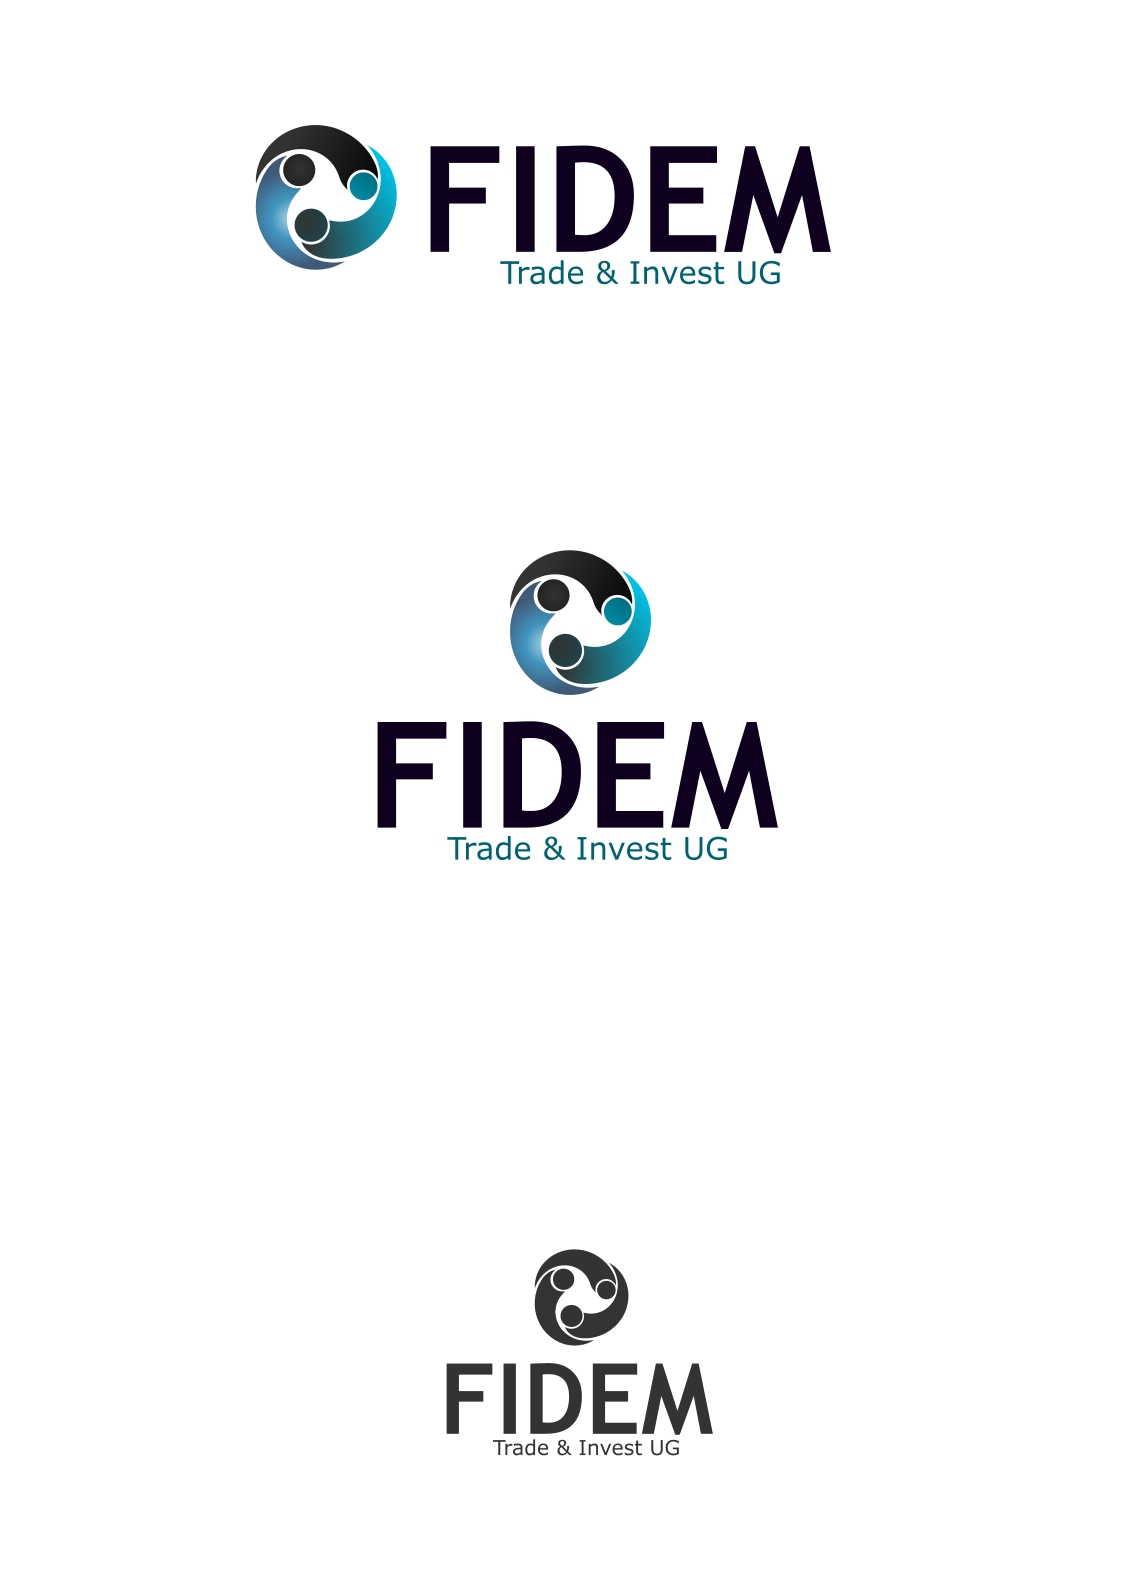 Logo Design by Private User - Entry No. 383 in the Logo Design Contest Professional Logo Design for FIDEM Trade & Invest UG.